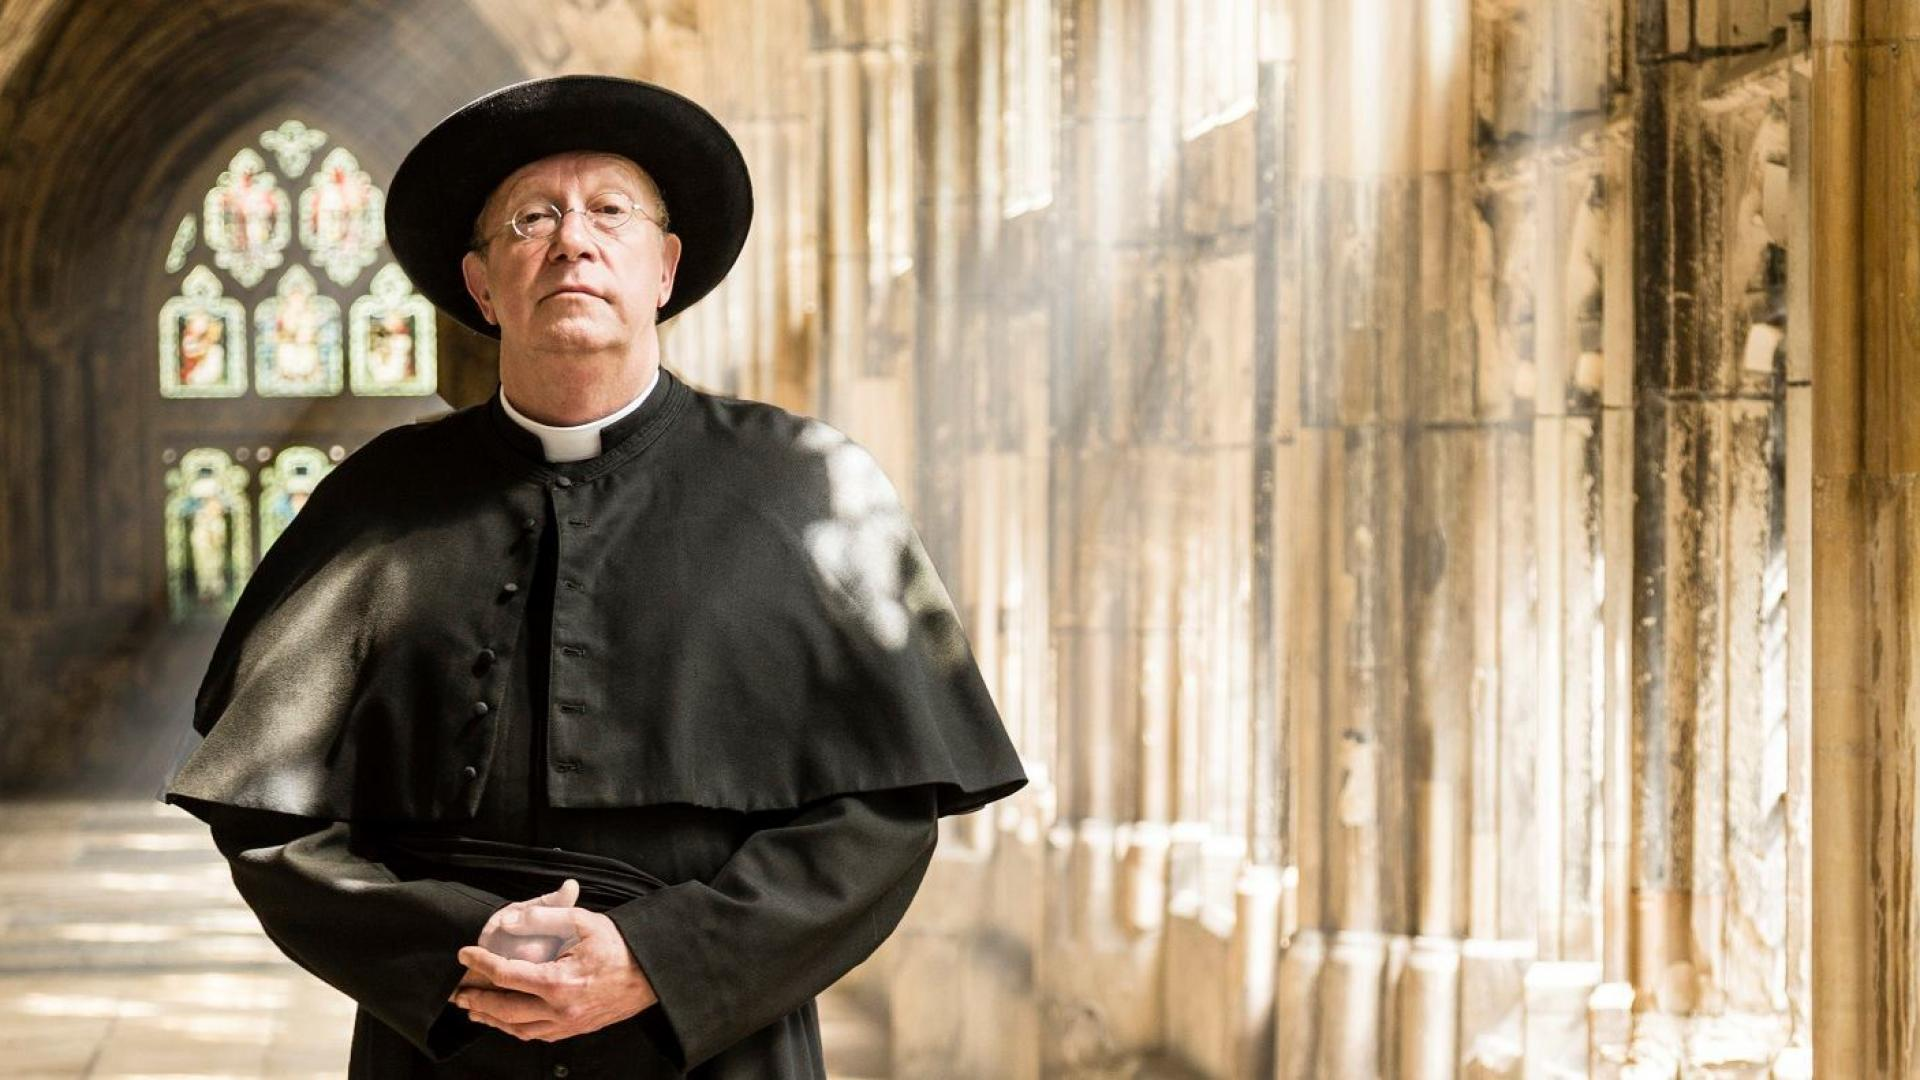 Father brown standing inside a church with bright sunlight coming through the windows